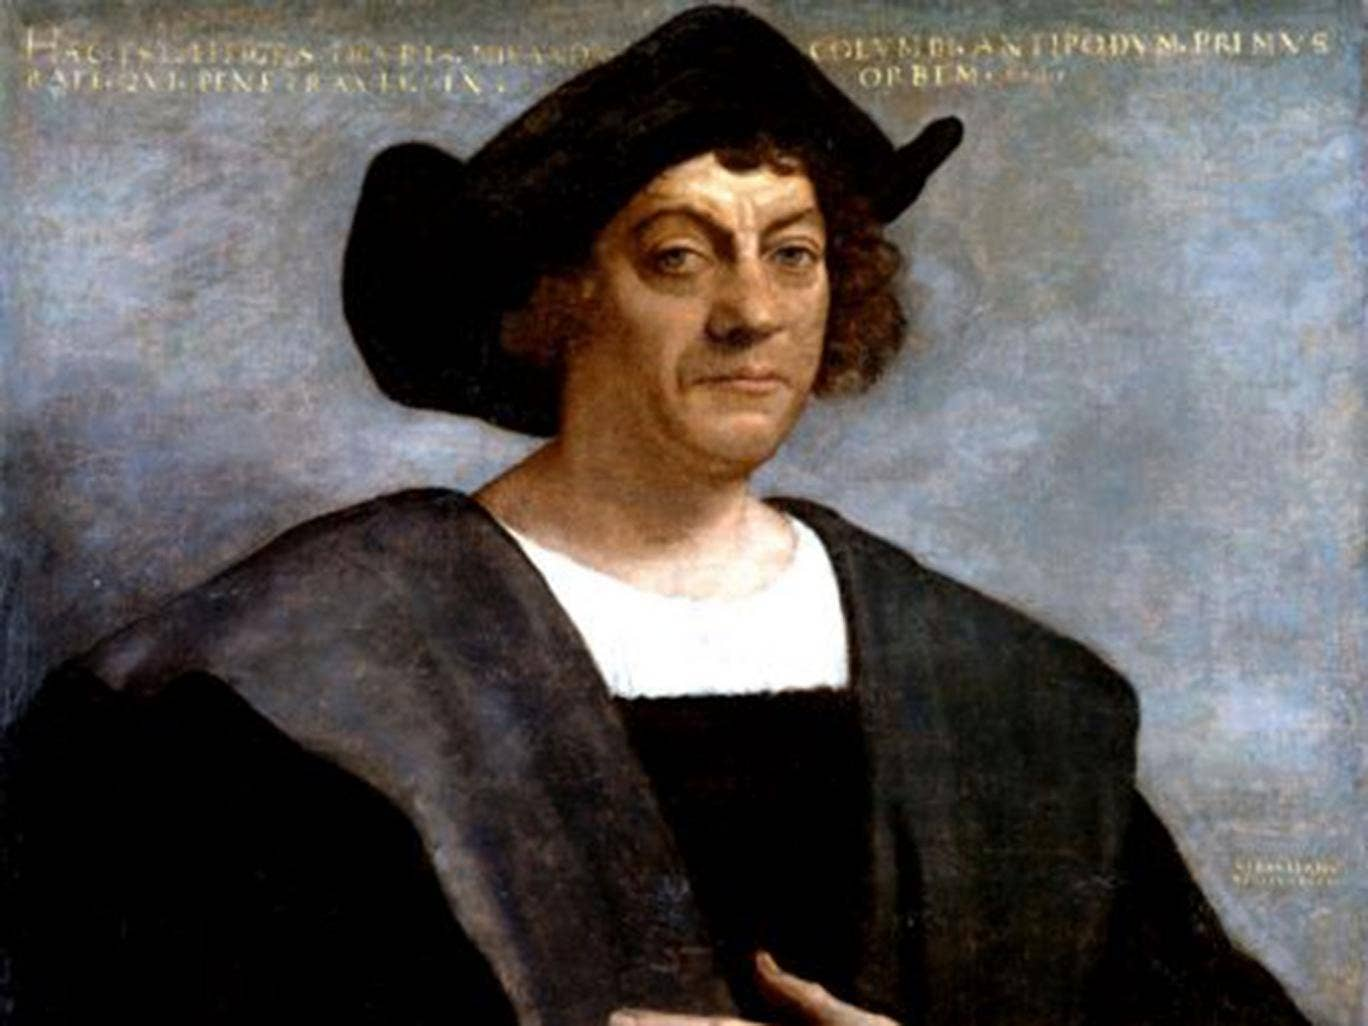 Christopher Columbus hired the ship in 1492 and sailed in it from southern Spain's Atlantic coast in search of a new western route to Asia